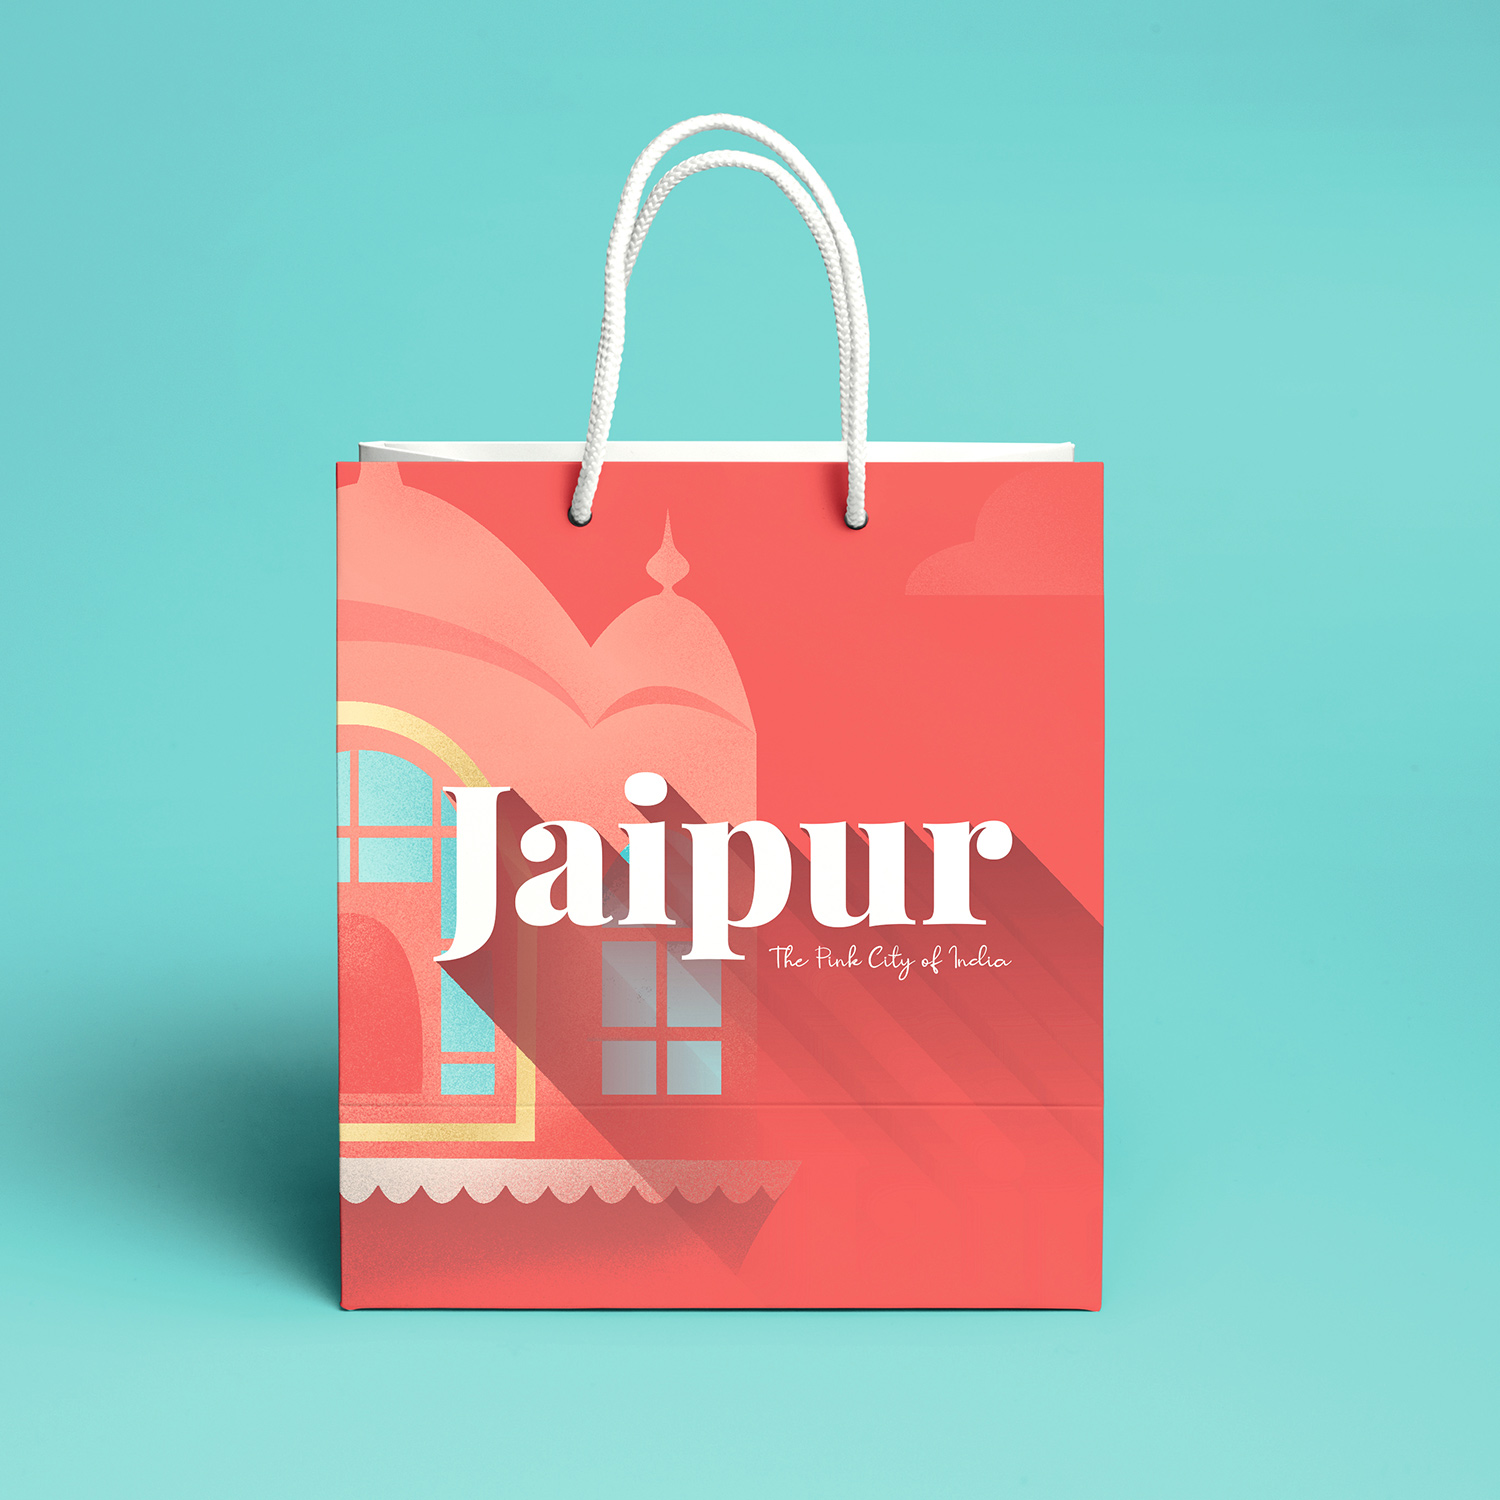 'Jaipur, the Pink City of India' by Joyce Chan